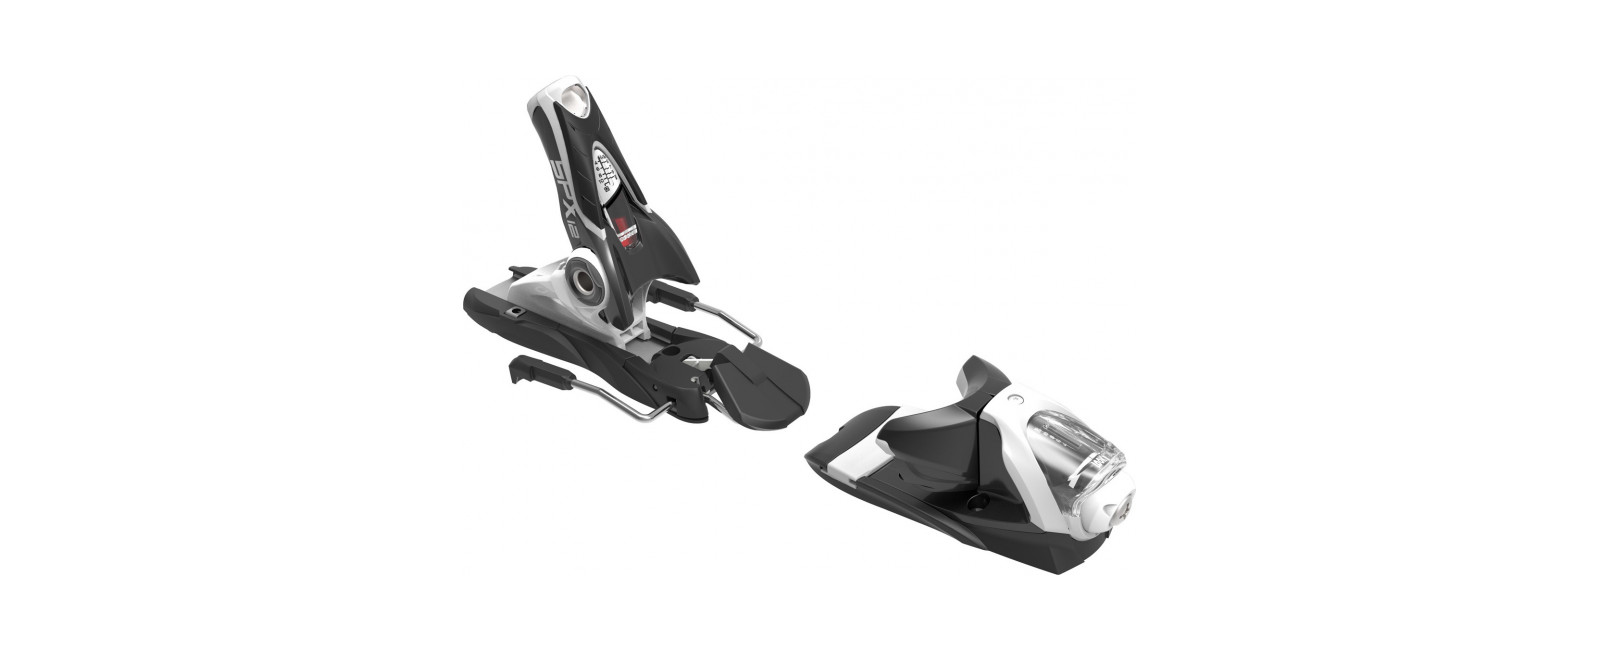 bindings SPX 12 DUAL WTR B120 BLACK WHITE